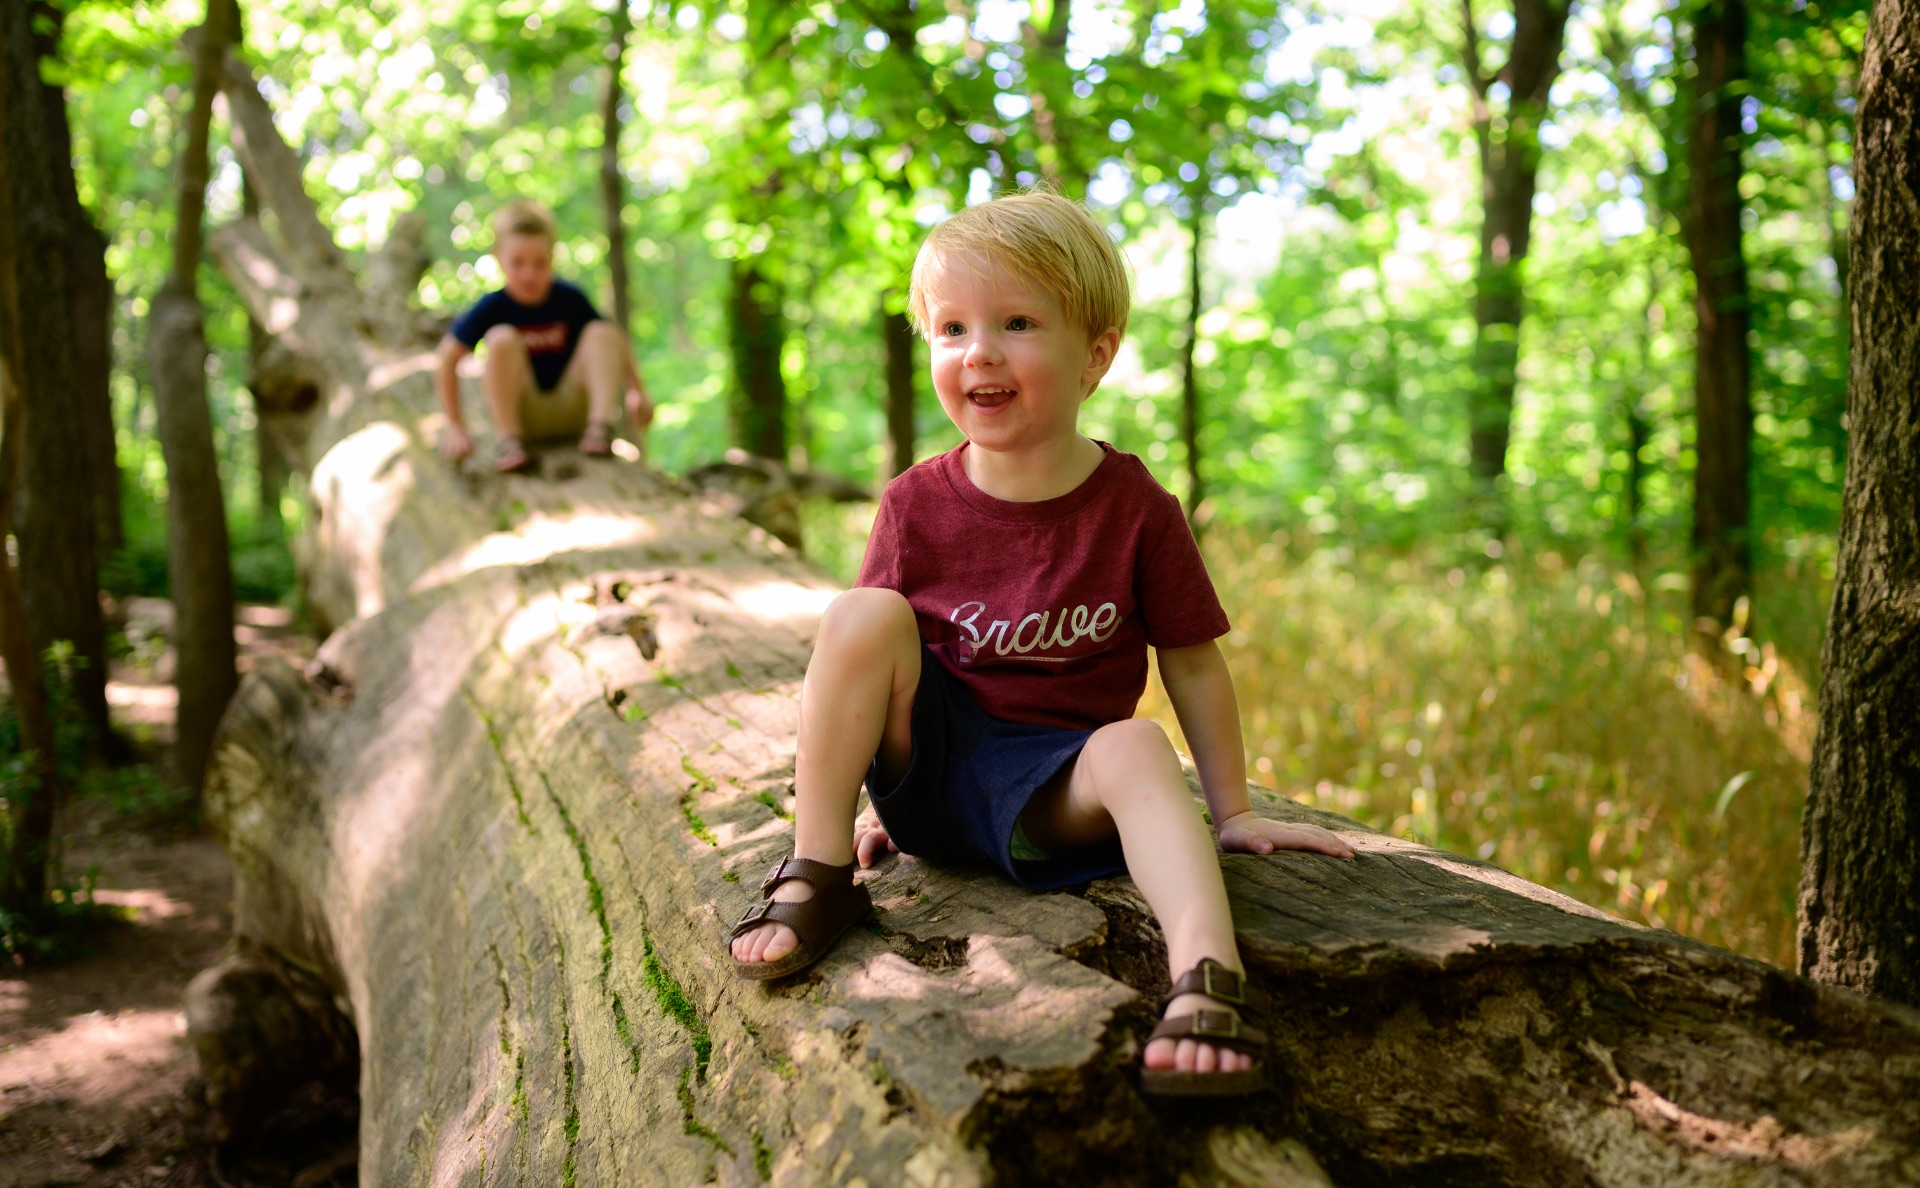 Jeremiah, now a toddler, sits and smiles on a log out in the woods. Another child can be seen playing on the same log behind Jeremiah.